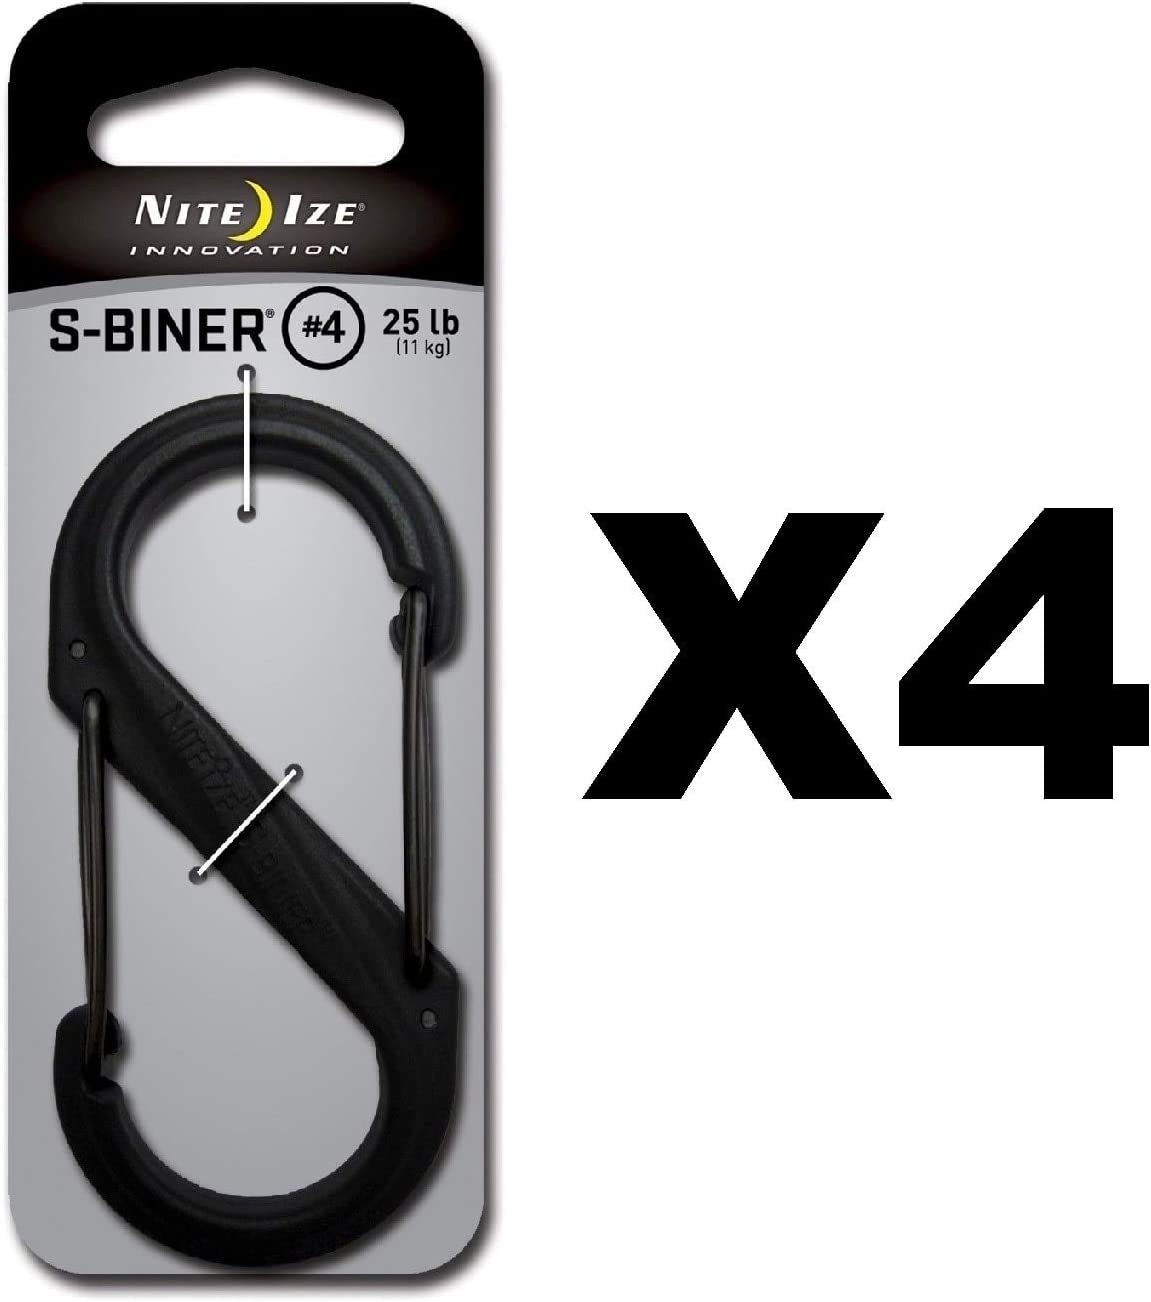 Nite Ize S-Biner Stainless Steel #4 Brushed Dual-Gated Carabiner 75lb 3-Pack